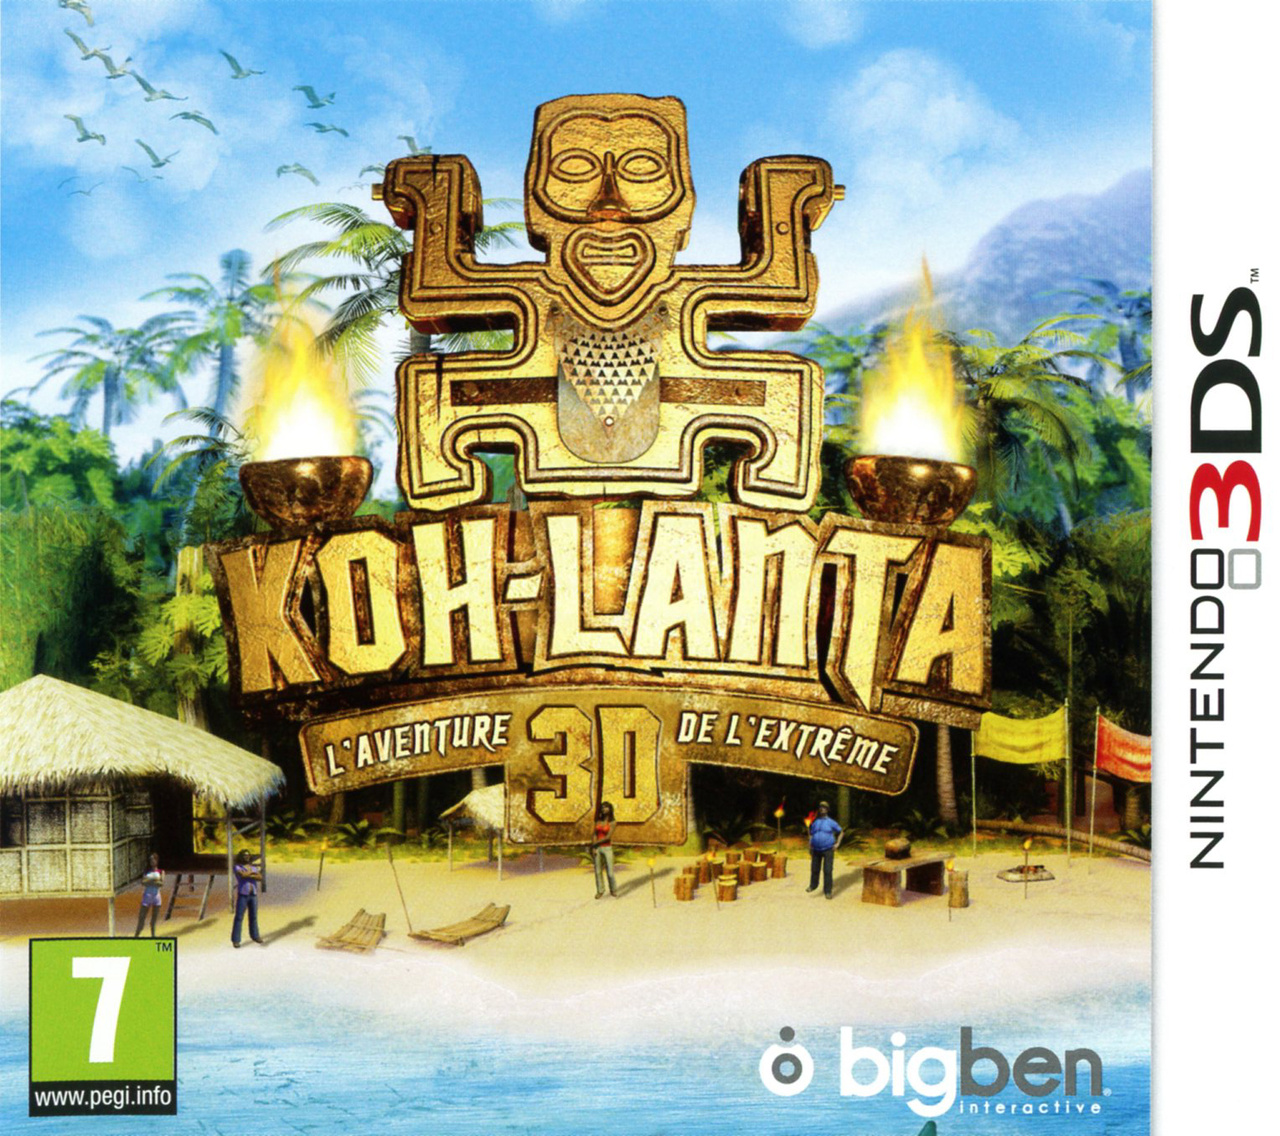 koh lanta 3d l aventure de l extr u00eame sur nintendo 3ds jeuxvideo com nintendo ds buyers guide nintendo ds buying guide